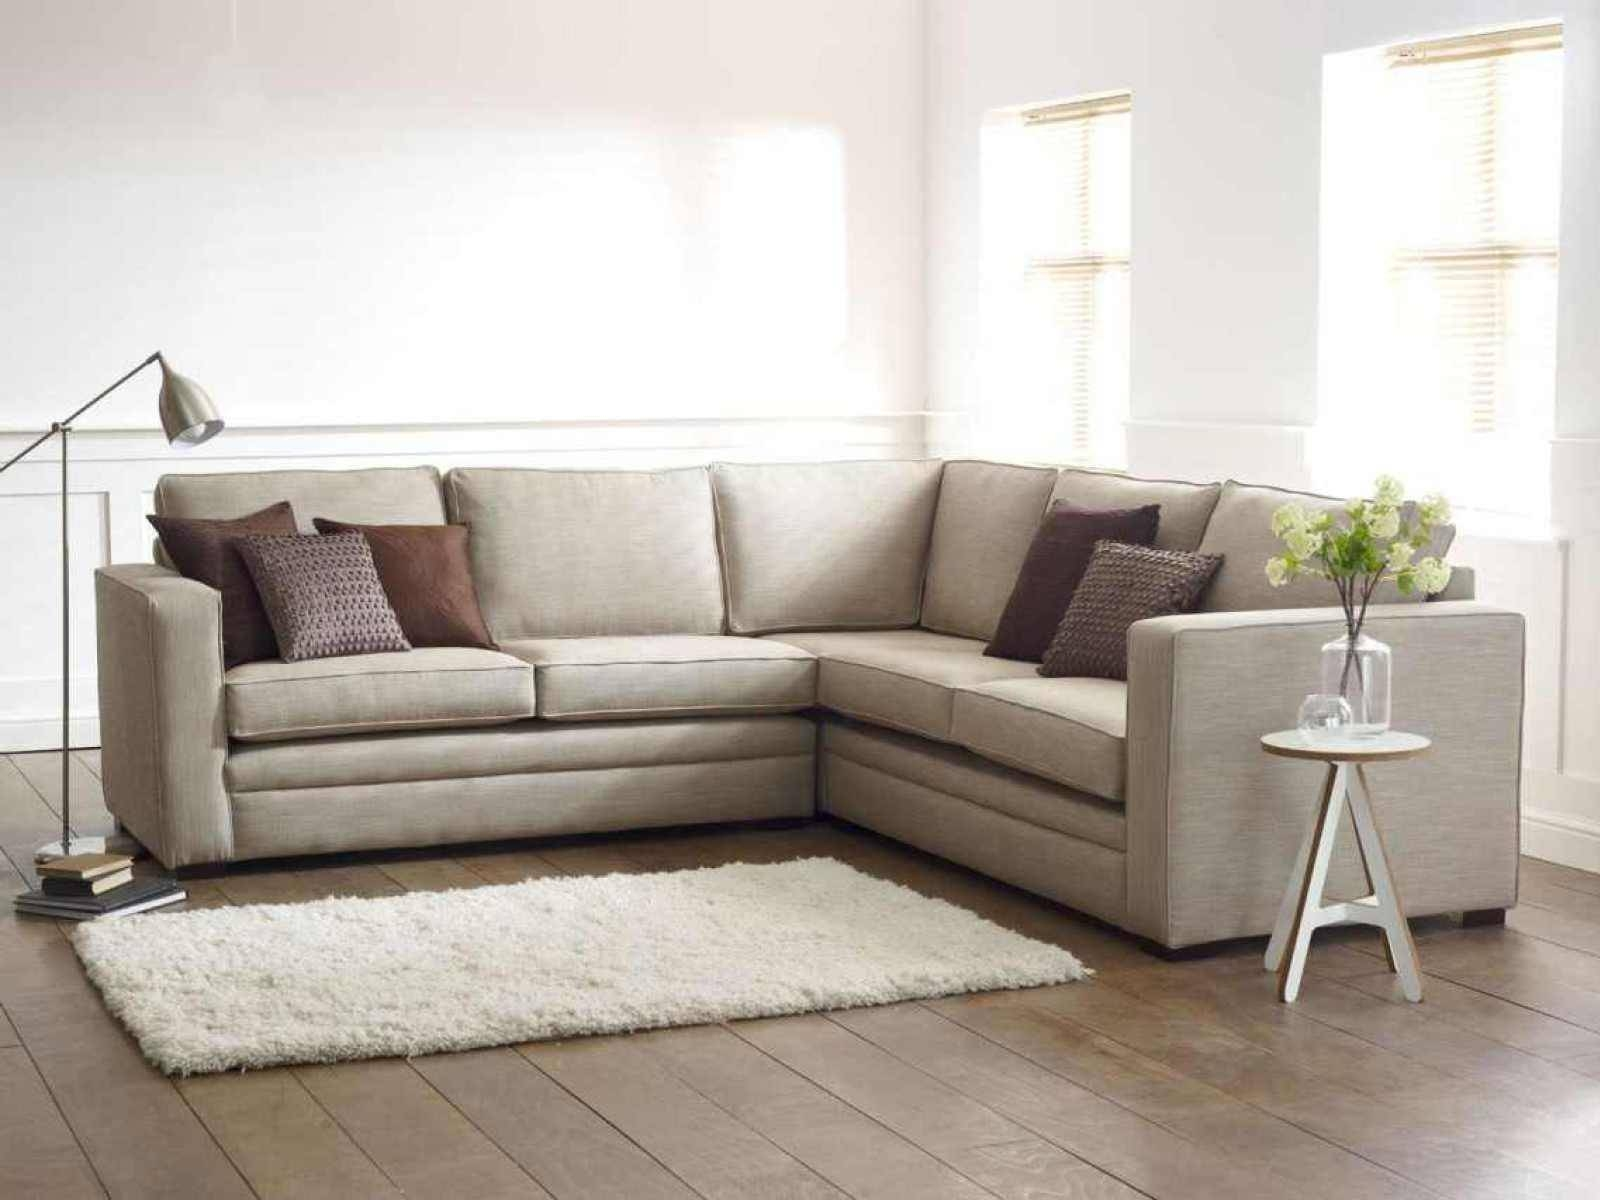 30 Best Collection of C Shaped Sectional Sofa